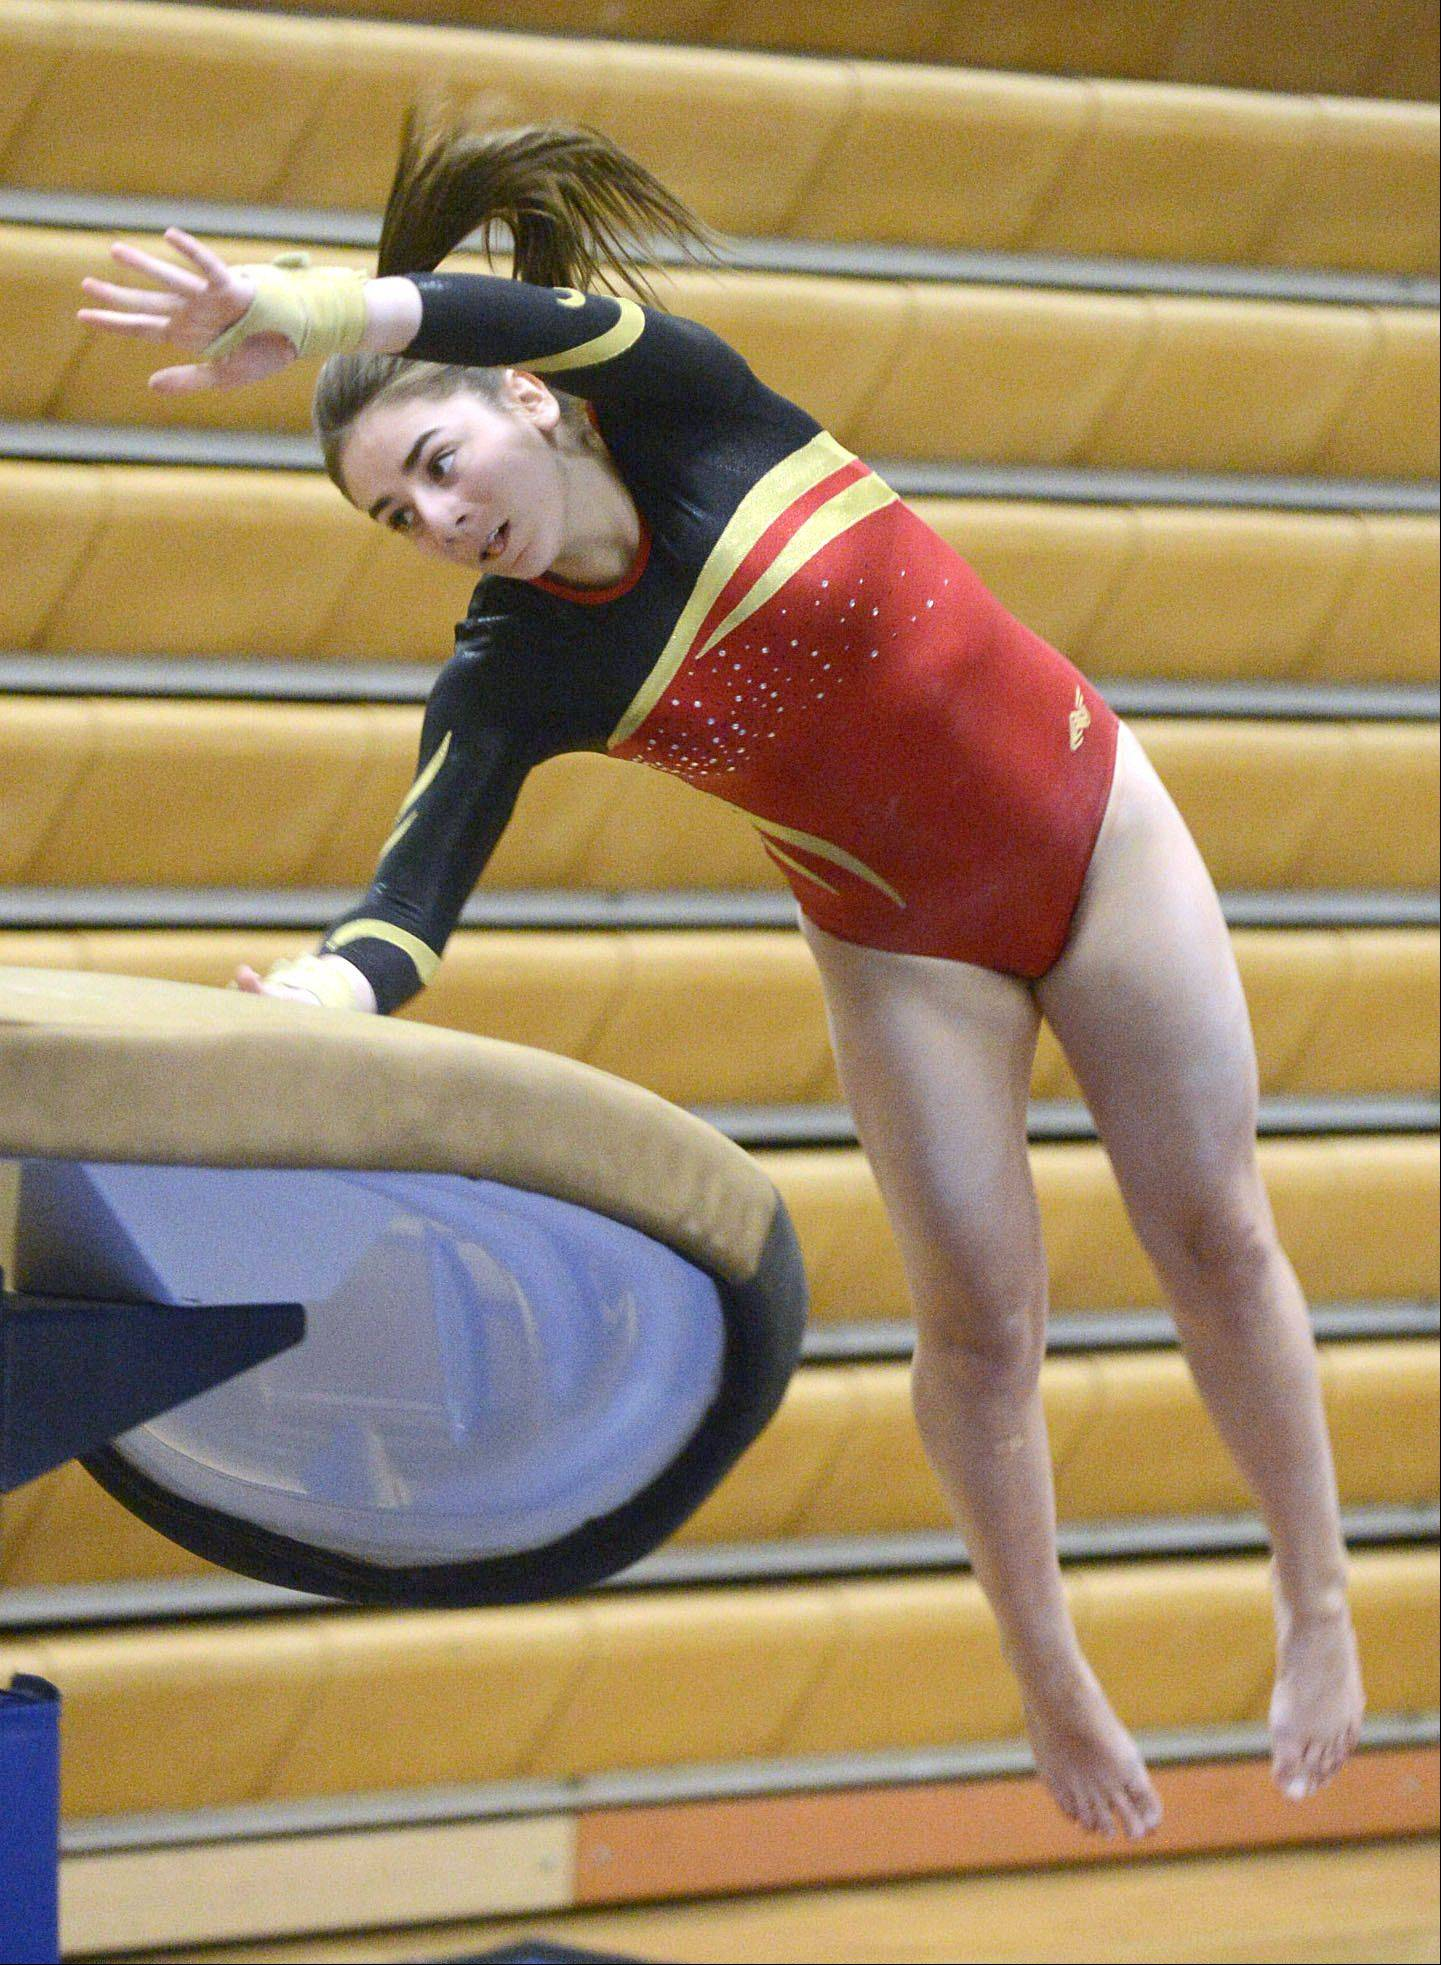 Batavia's Megan McGee competes on the vault during the gymnastics meet vs. Geneva on Wednesday, January 8.